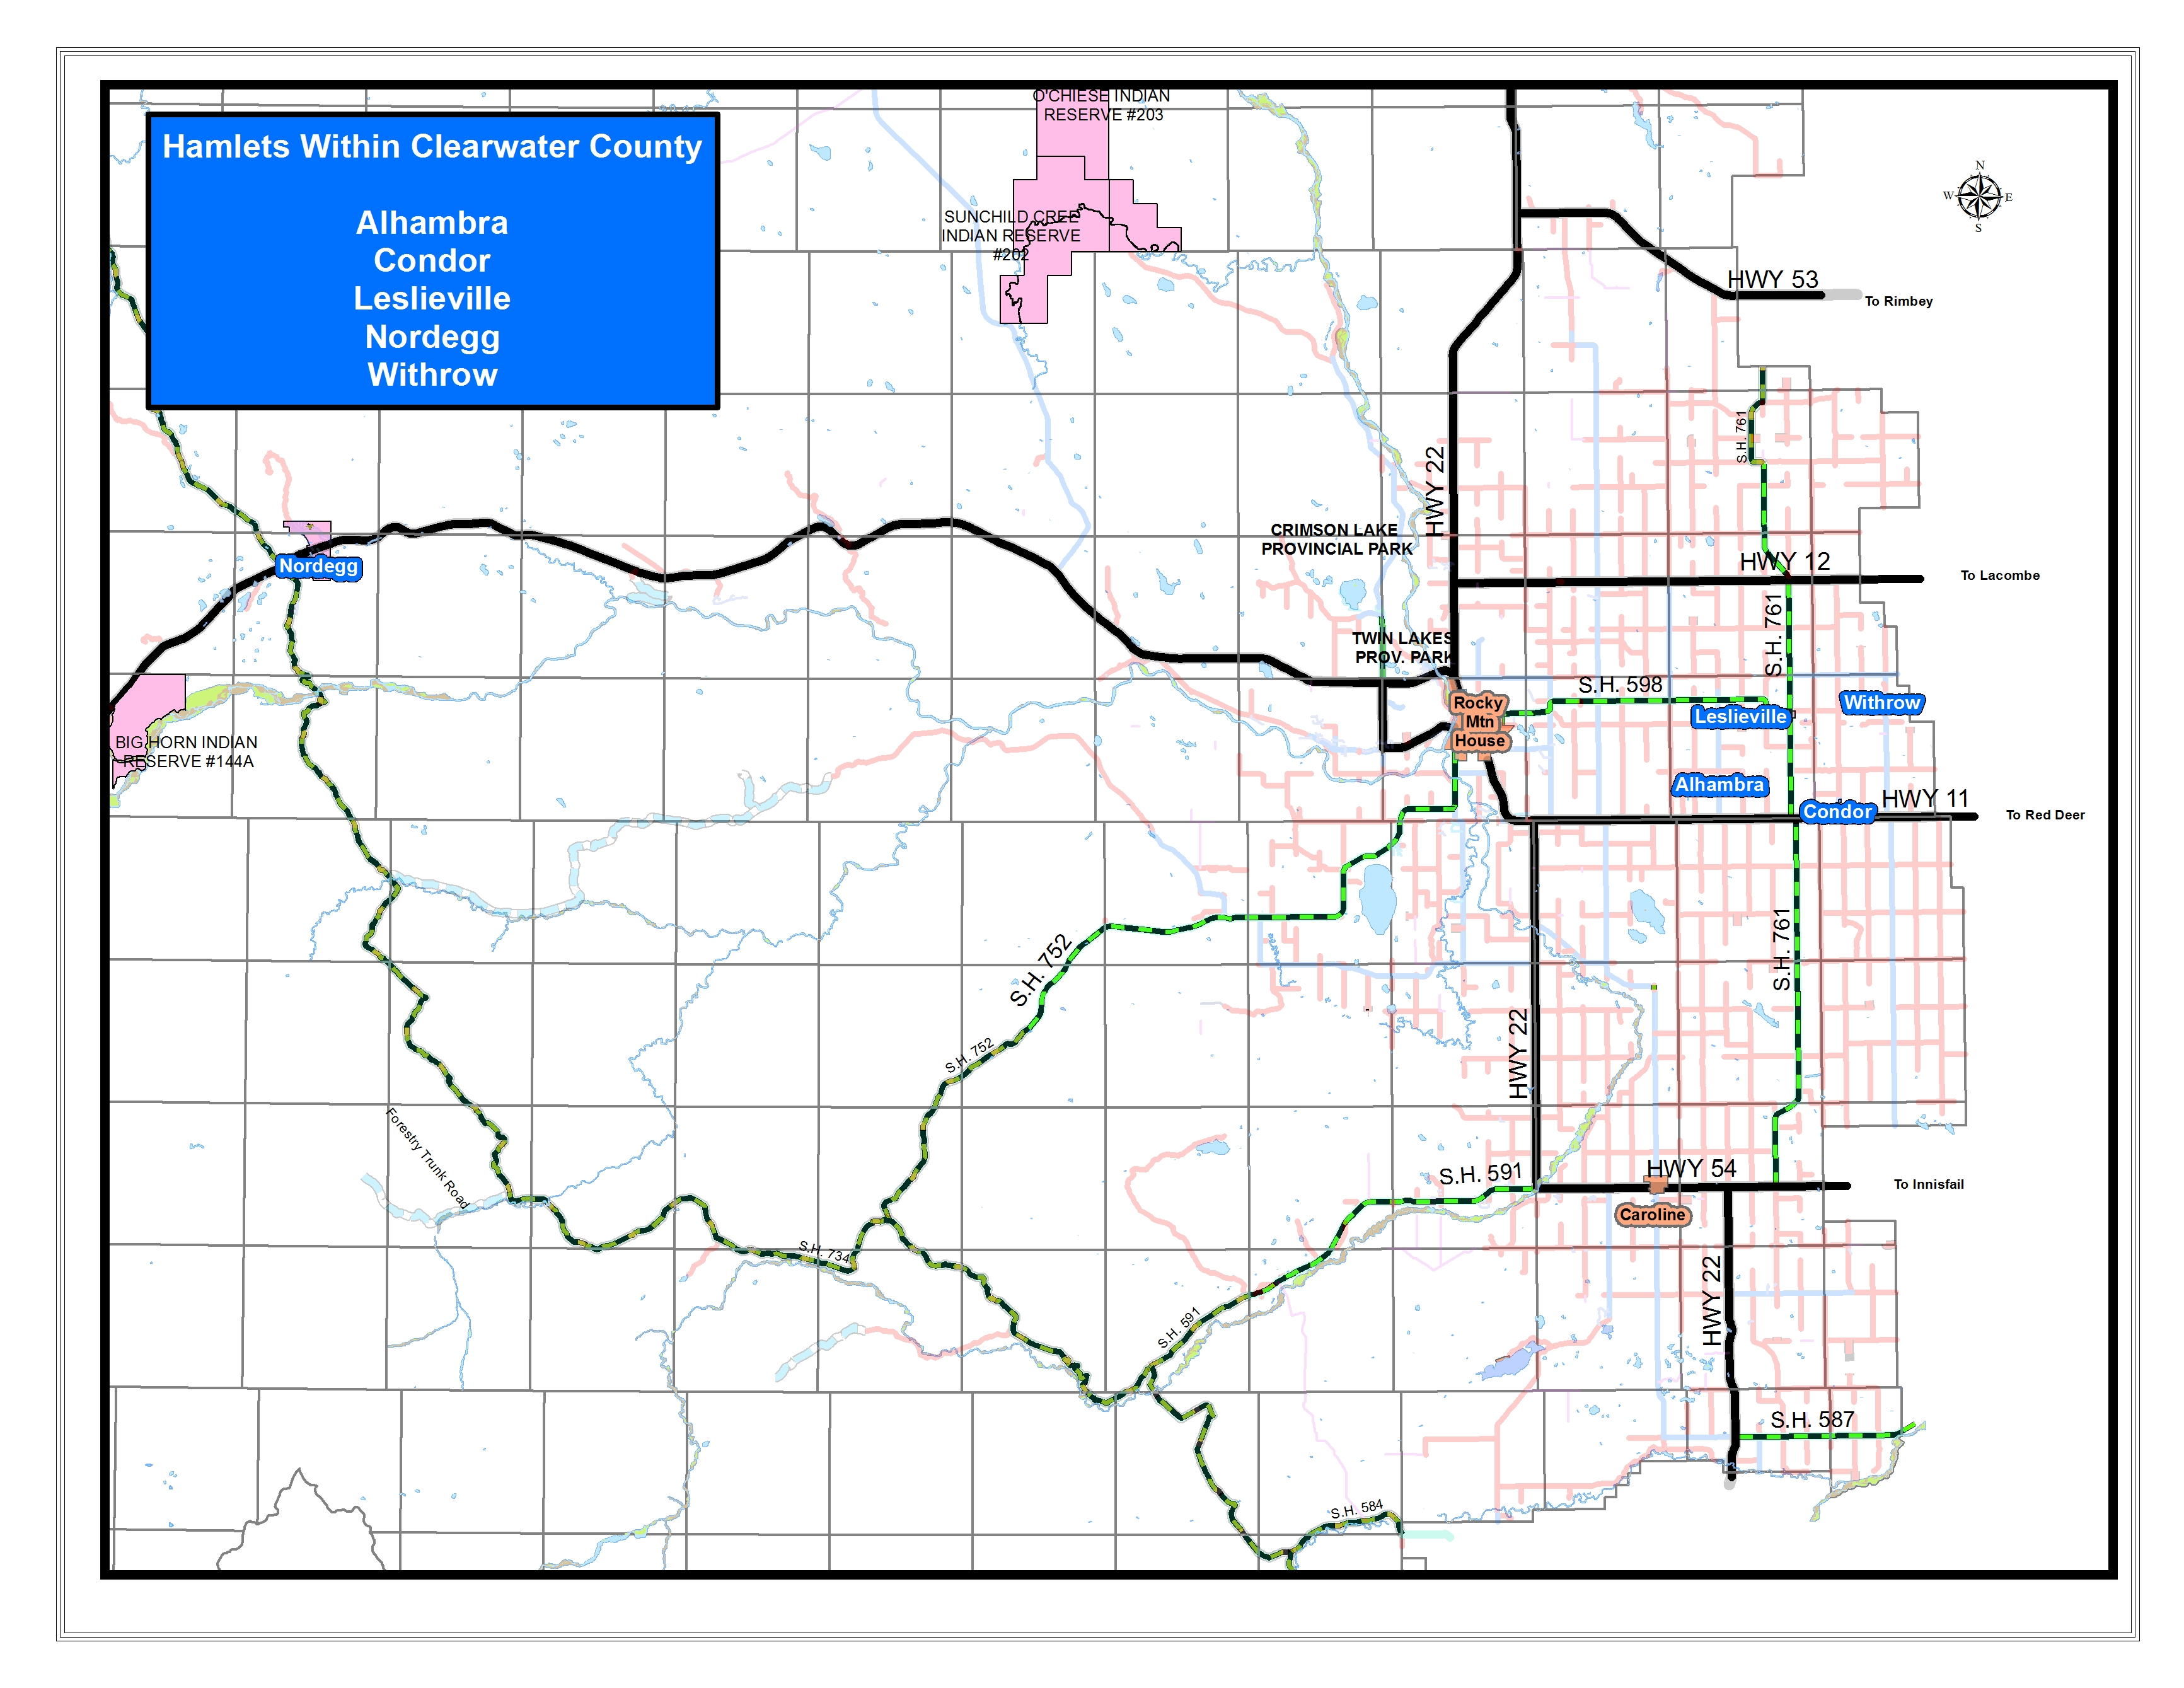 Clearwater County - Hamlets on